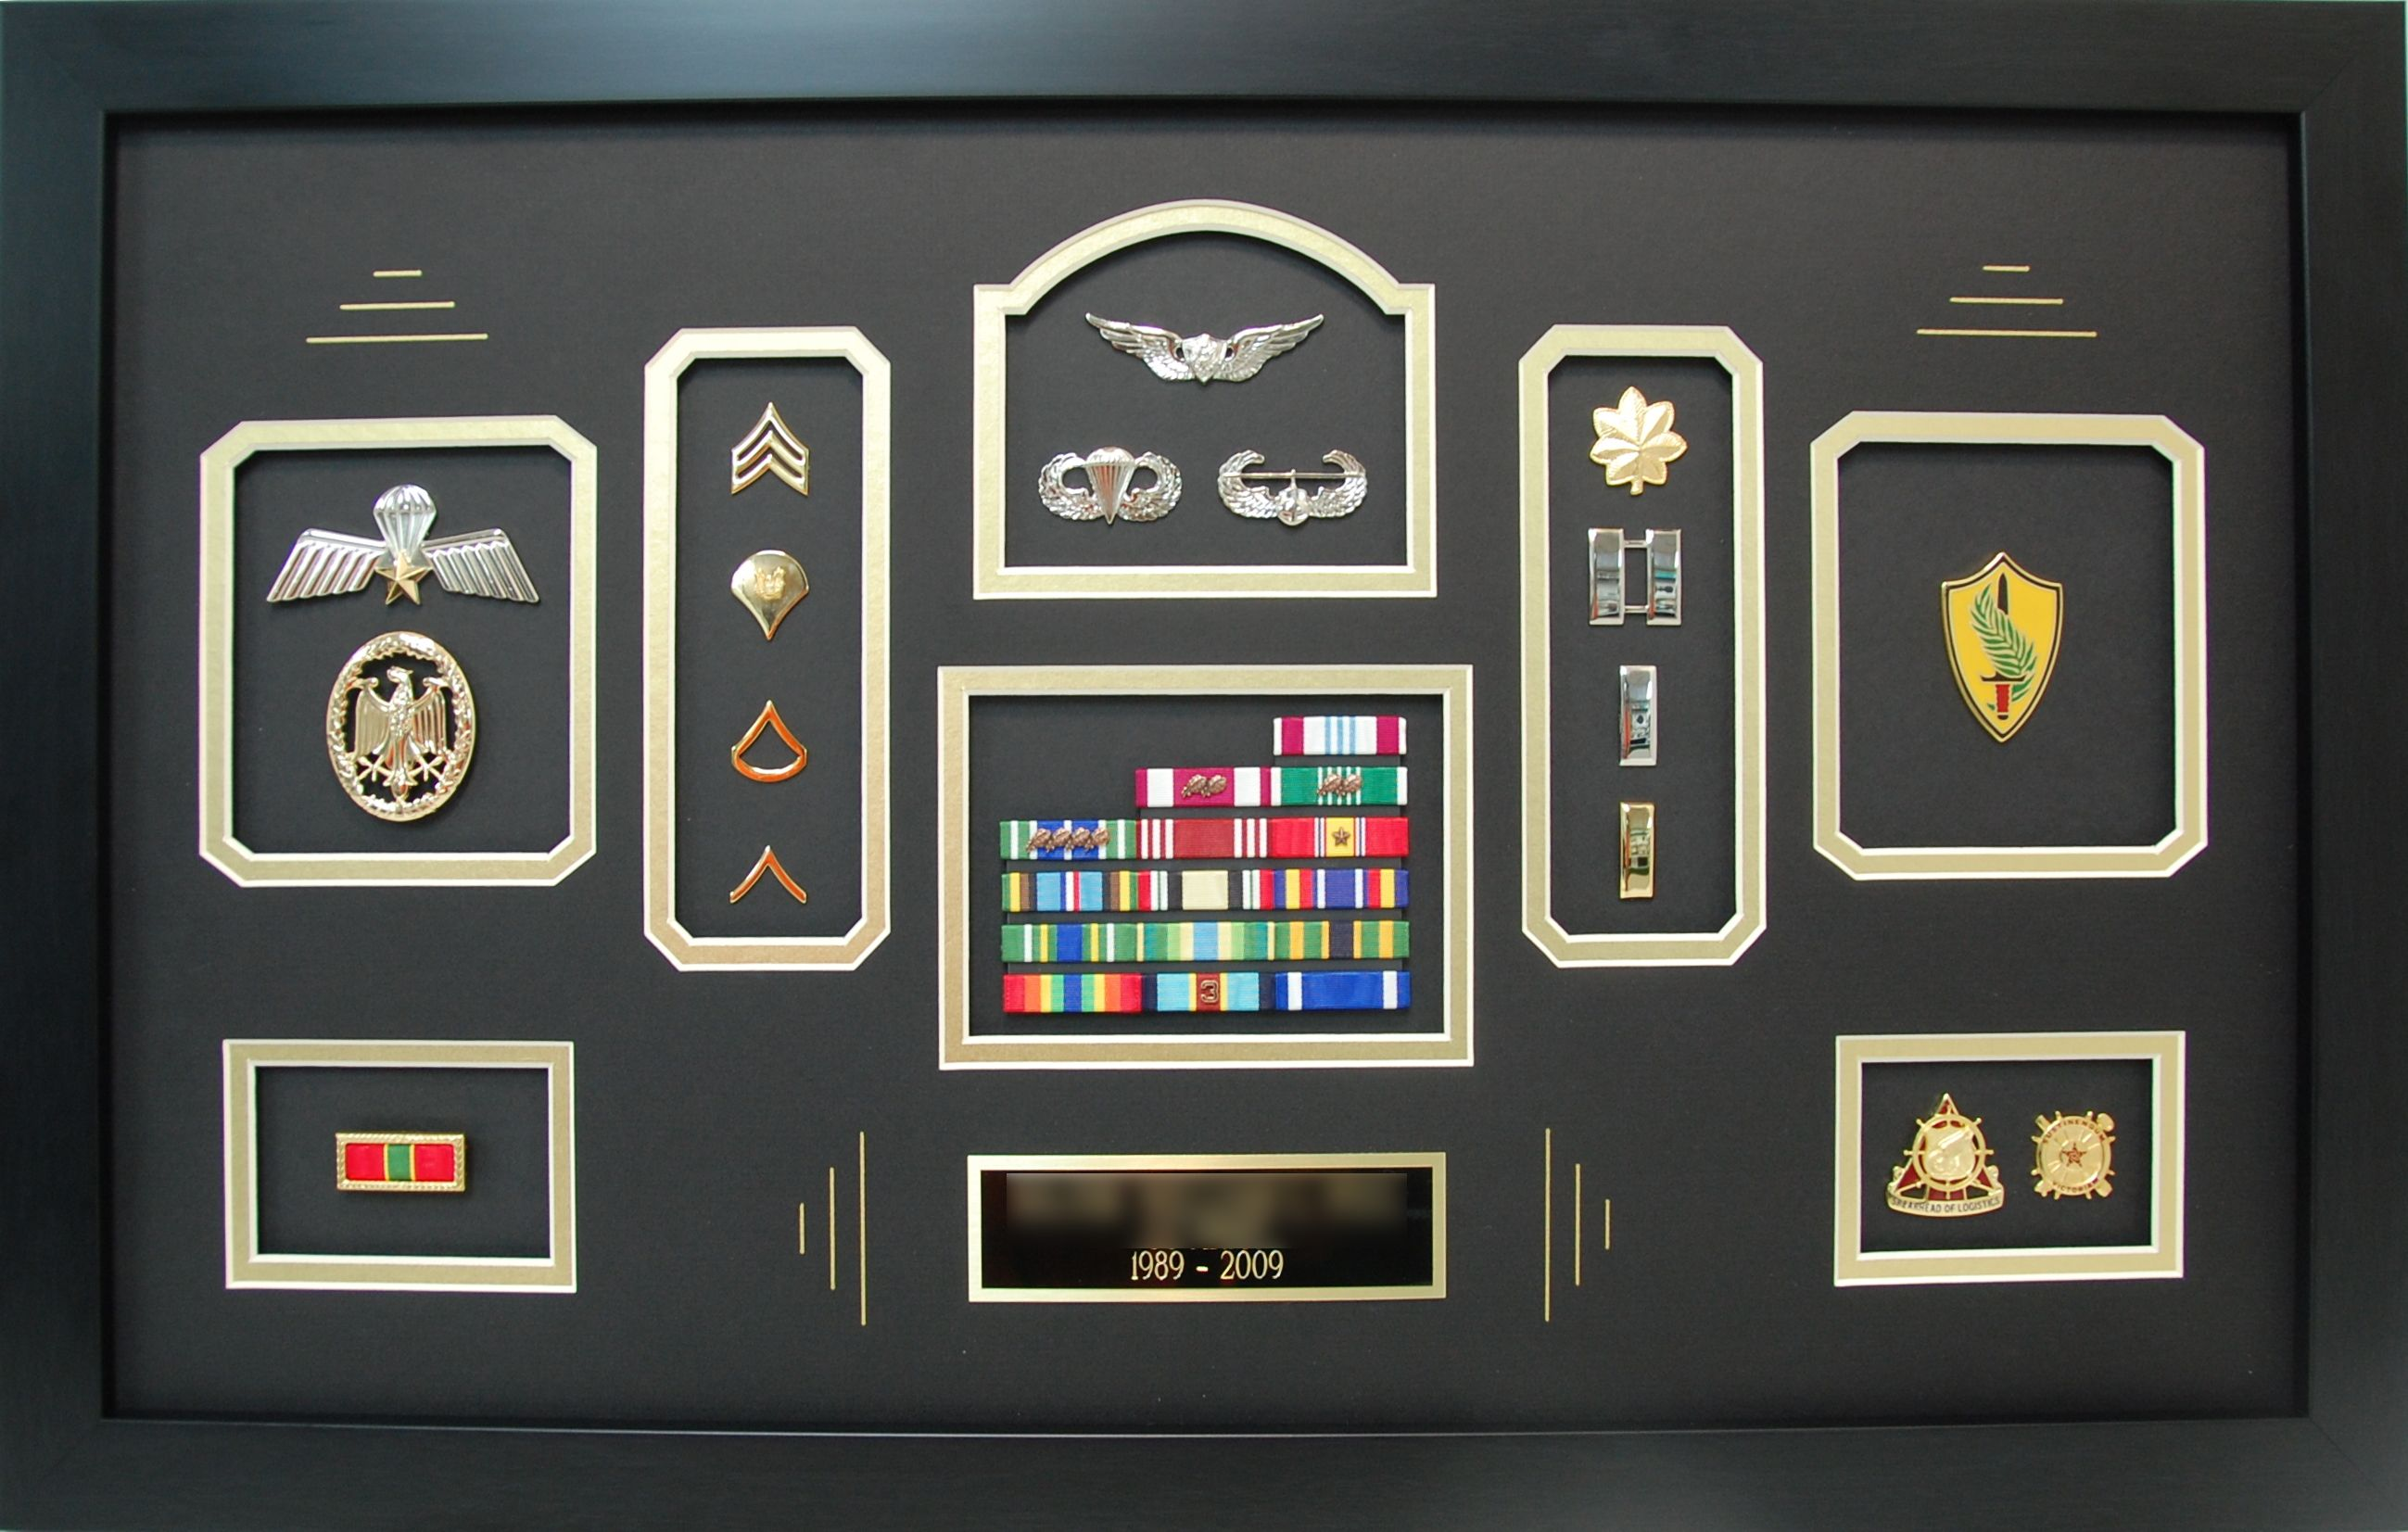 This Army Major S Shadow Box Turned Out Very Nice This Design